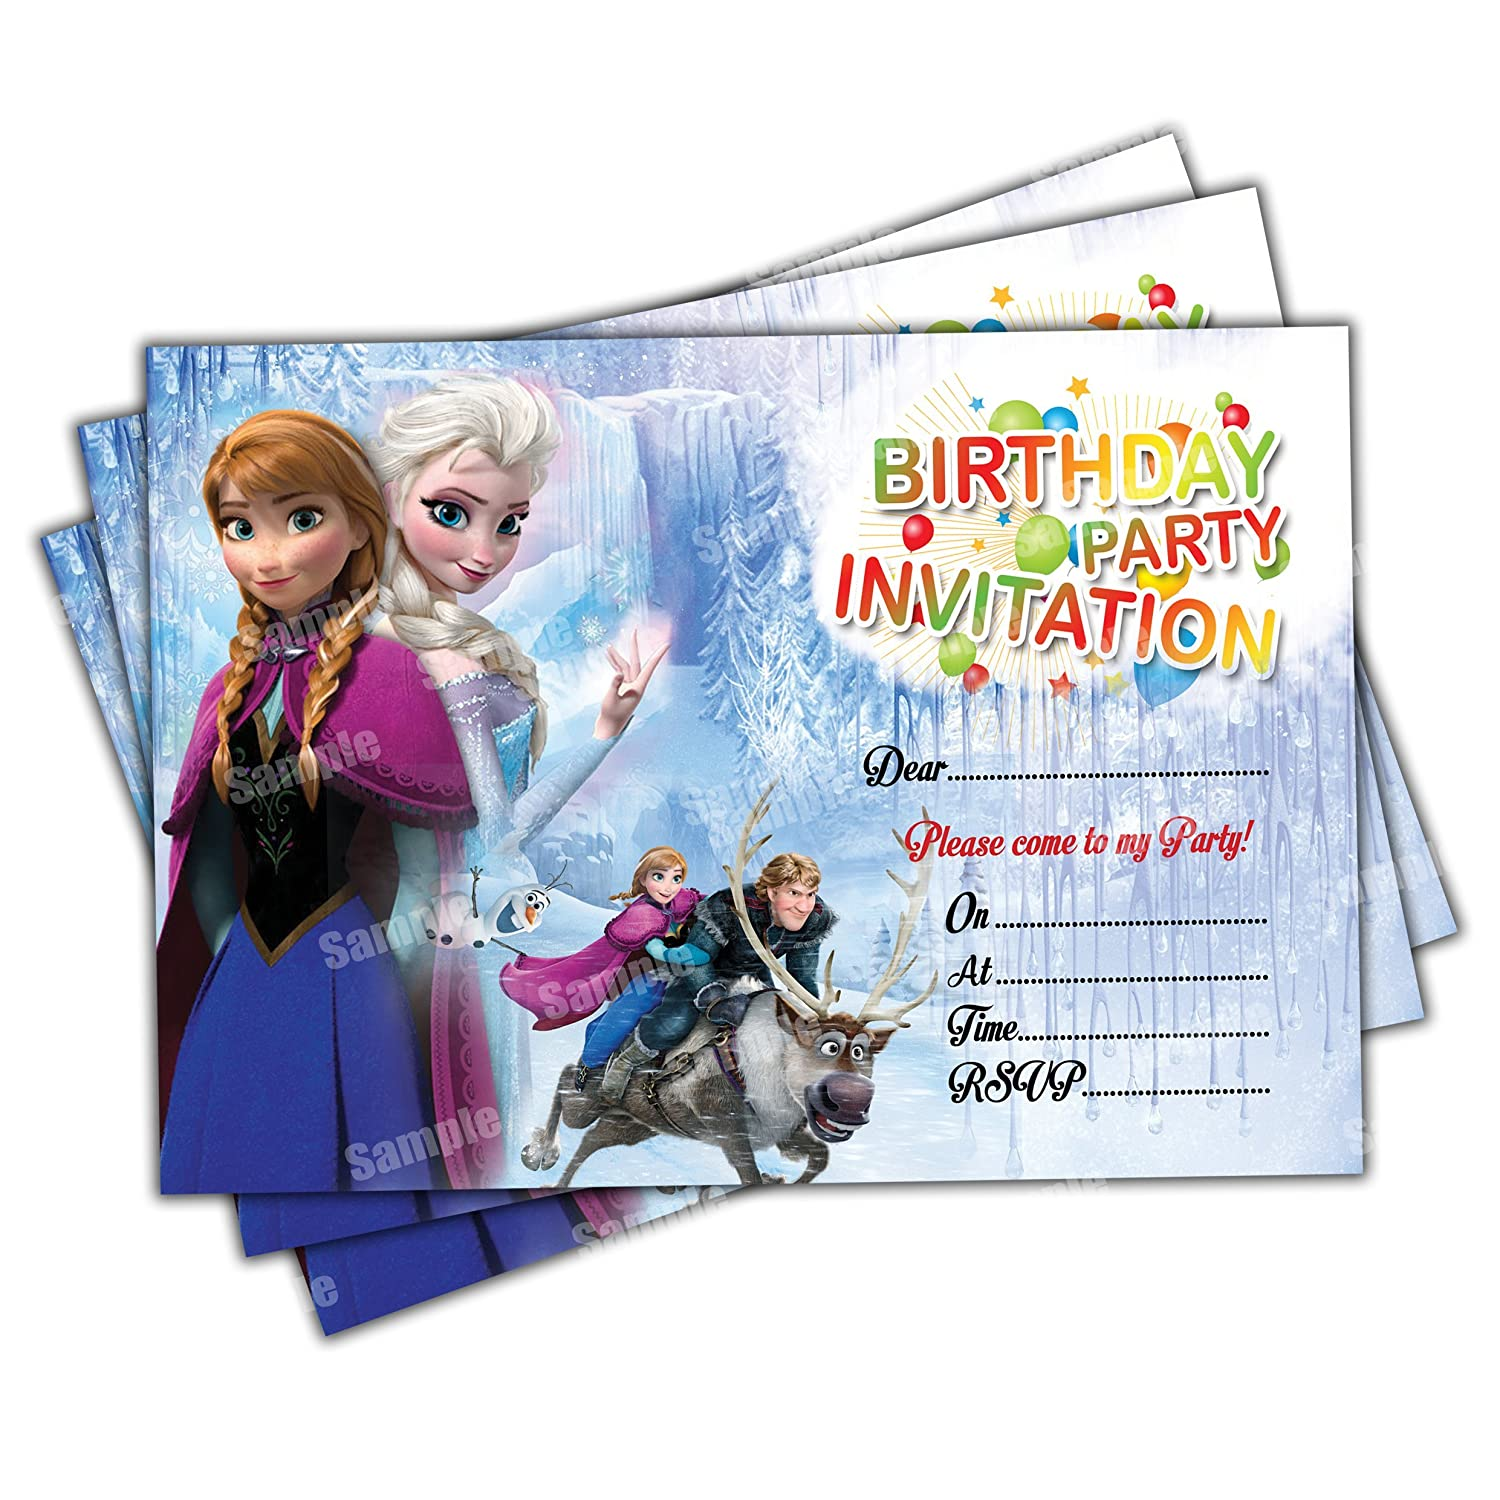 20 x Frozen Kids Birthday Party Invitations Invites Cards Quality Girls Boys Birthday Invitations